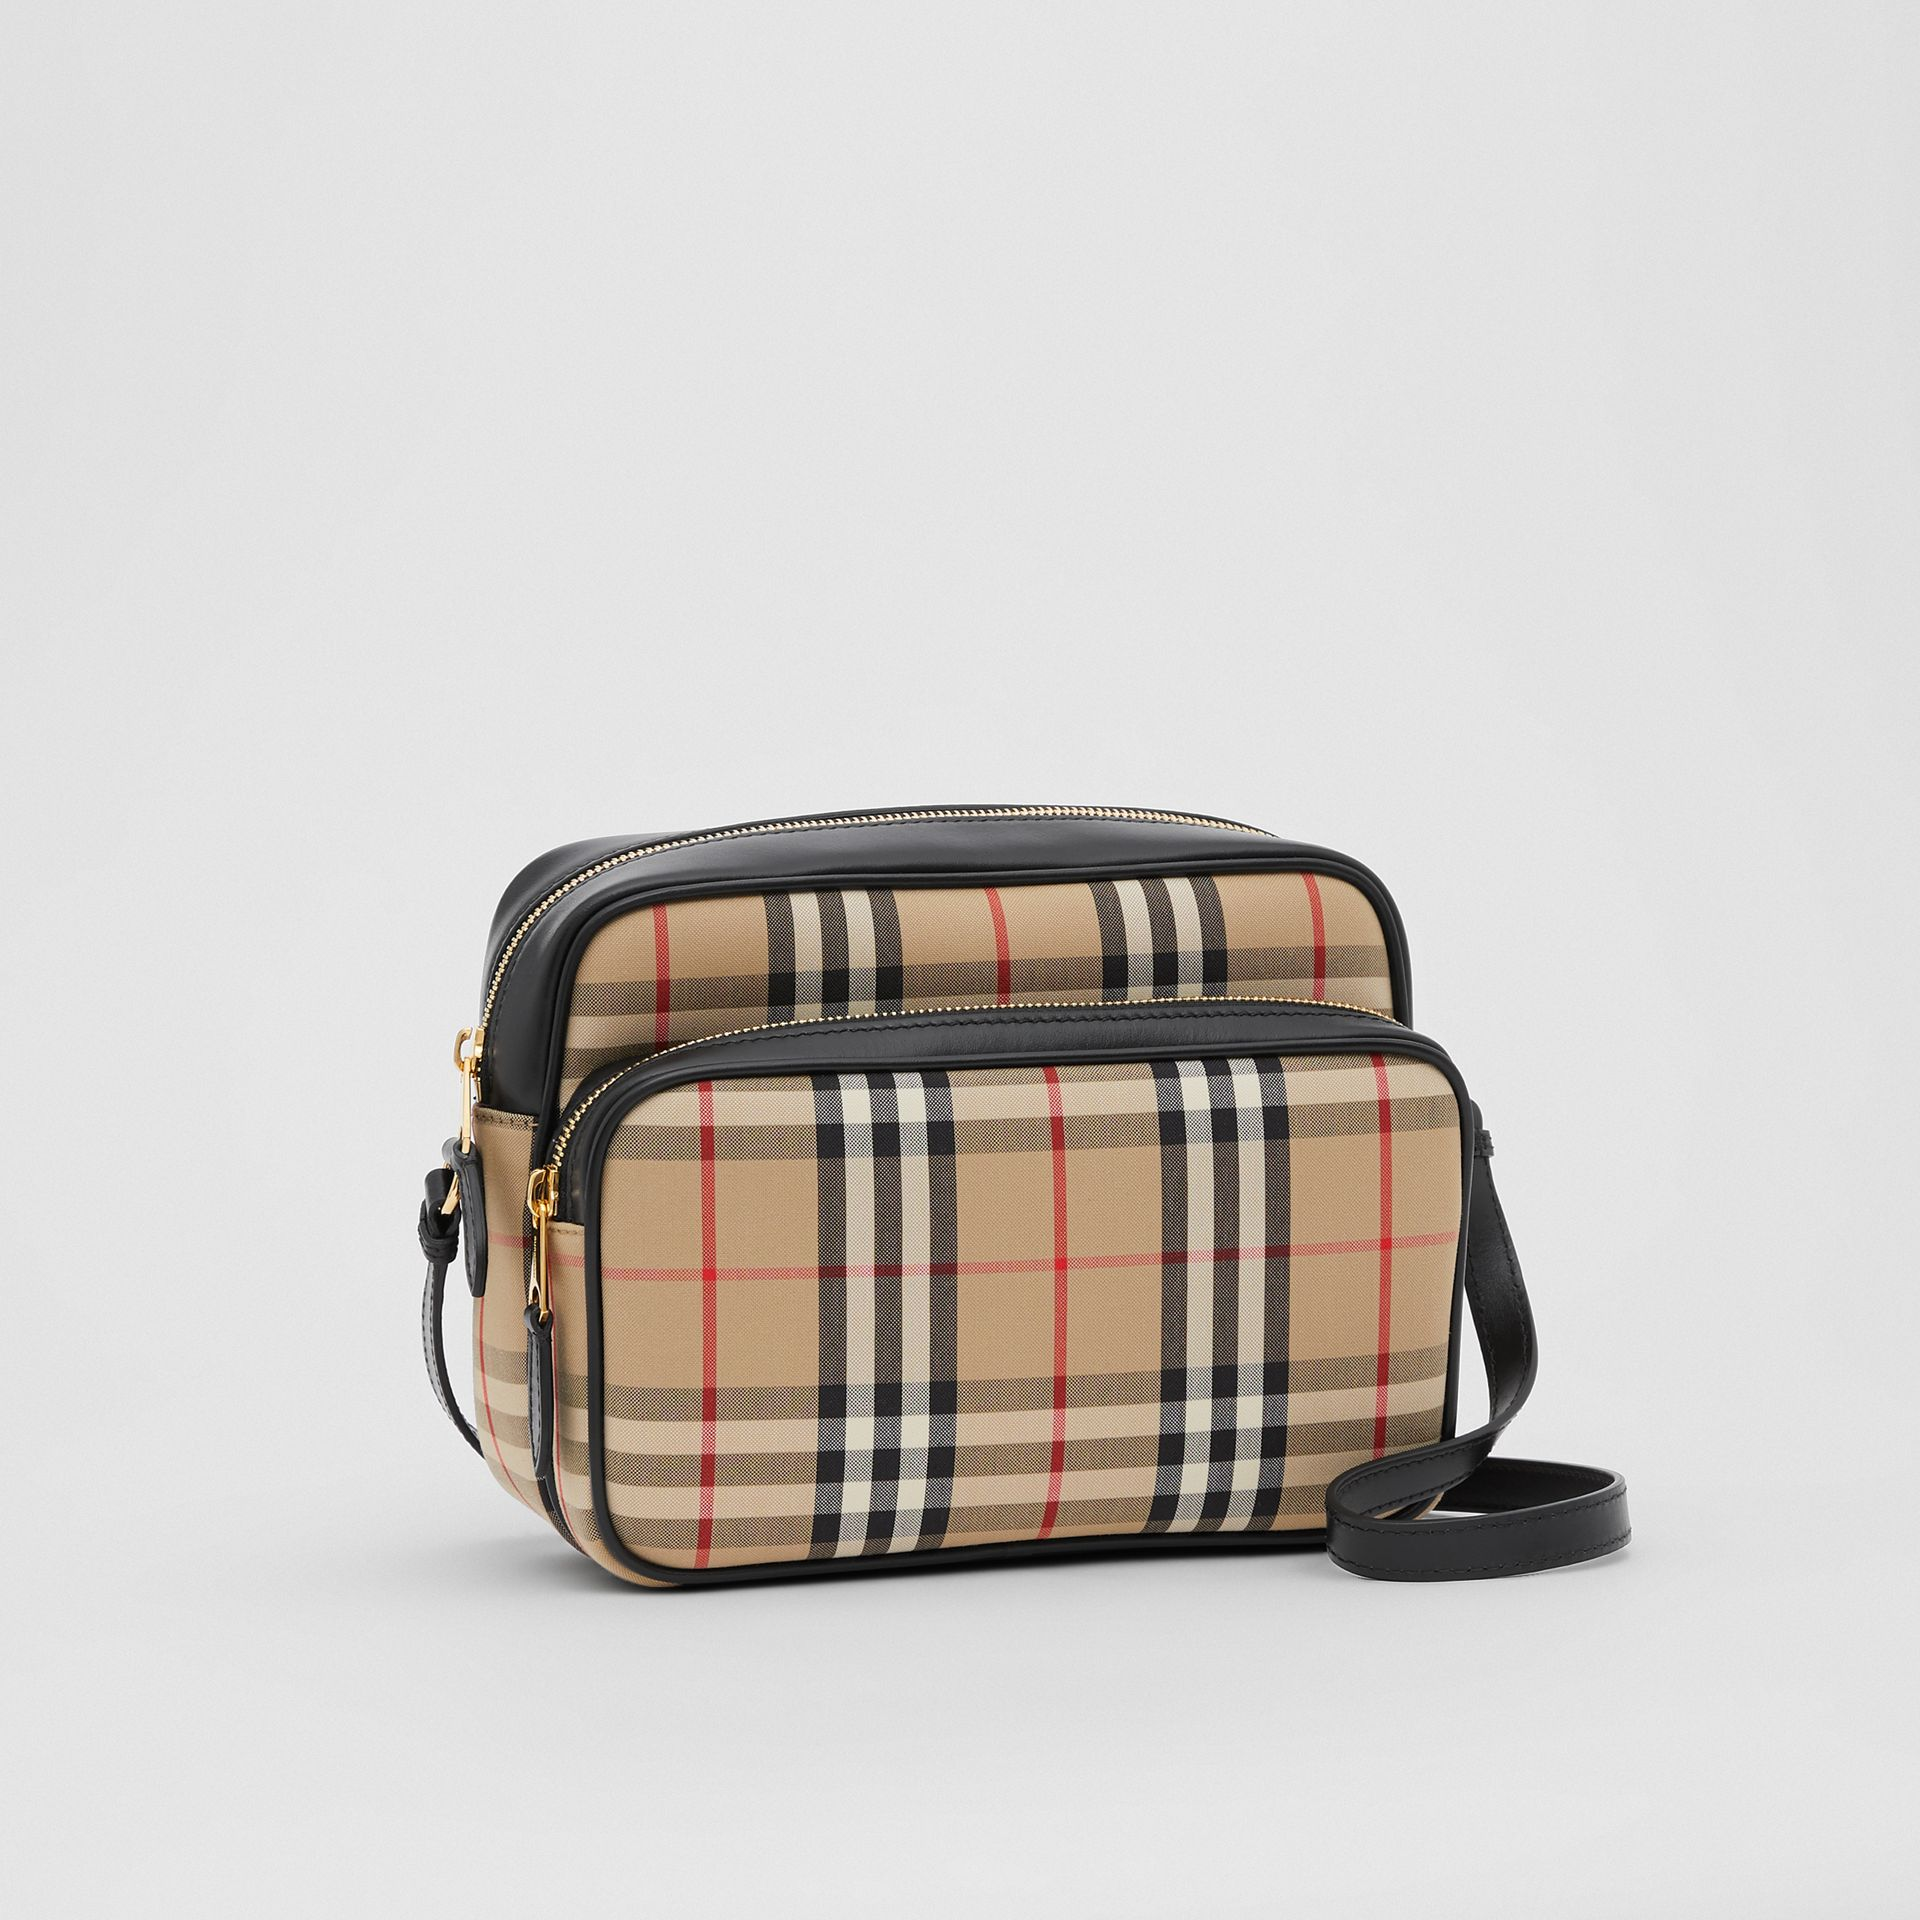 Medium Vintage Check and Leather Camera Bag in Archive Beige - Women | Burberry - gallery image 6